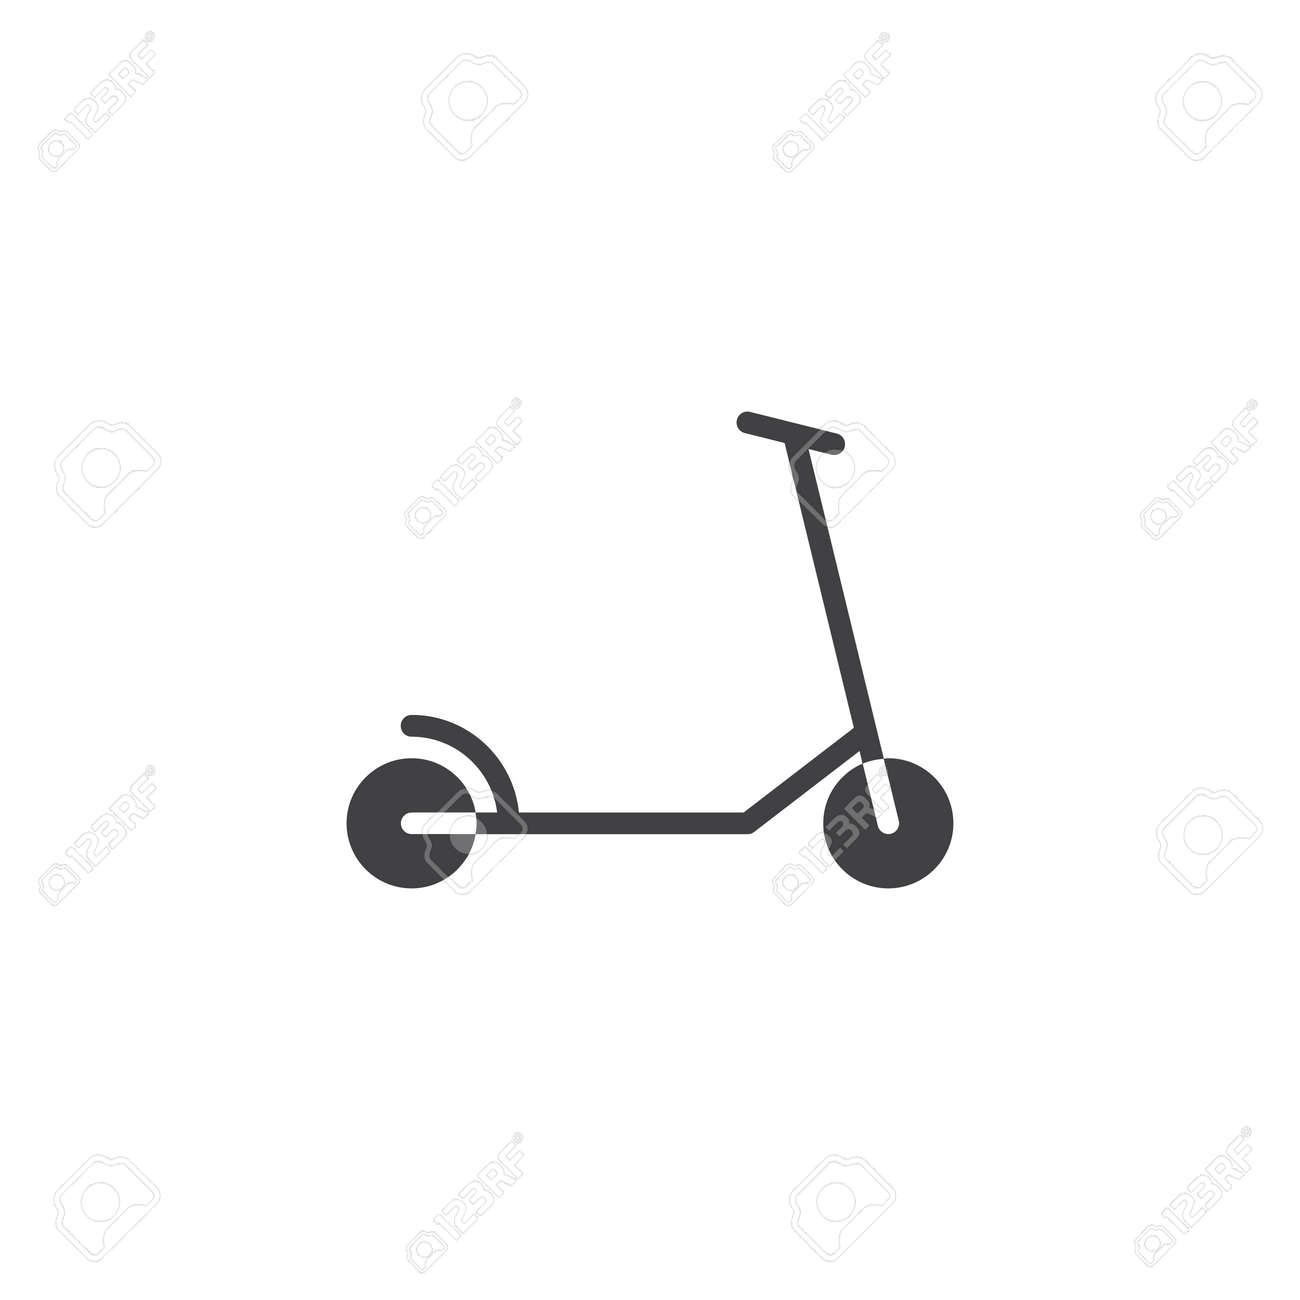 kick scooter vector icon filled flat sign for mobile concept royalty free cliparts vectors and stock illustration image 117173151 kick scooter vector icon filled flat sign for mobile concept